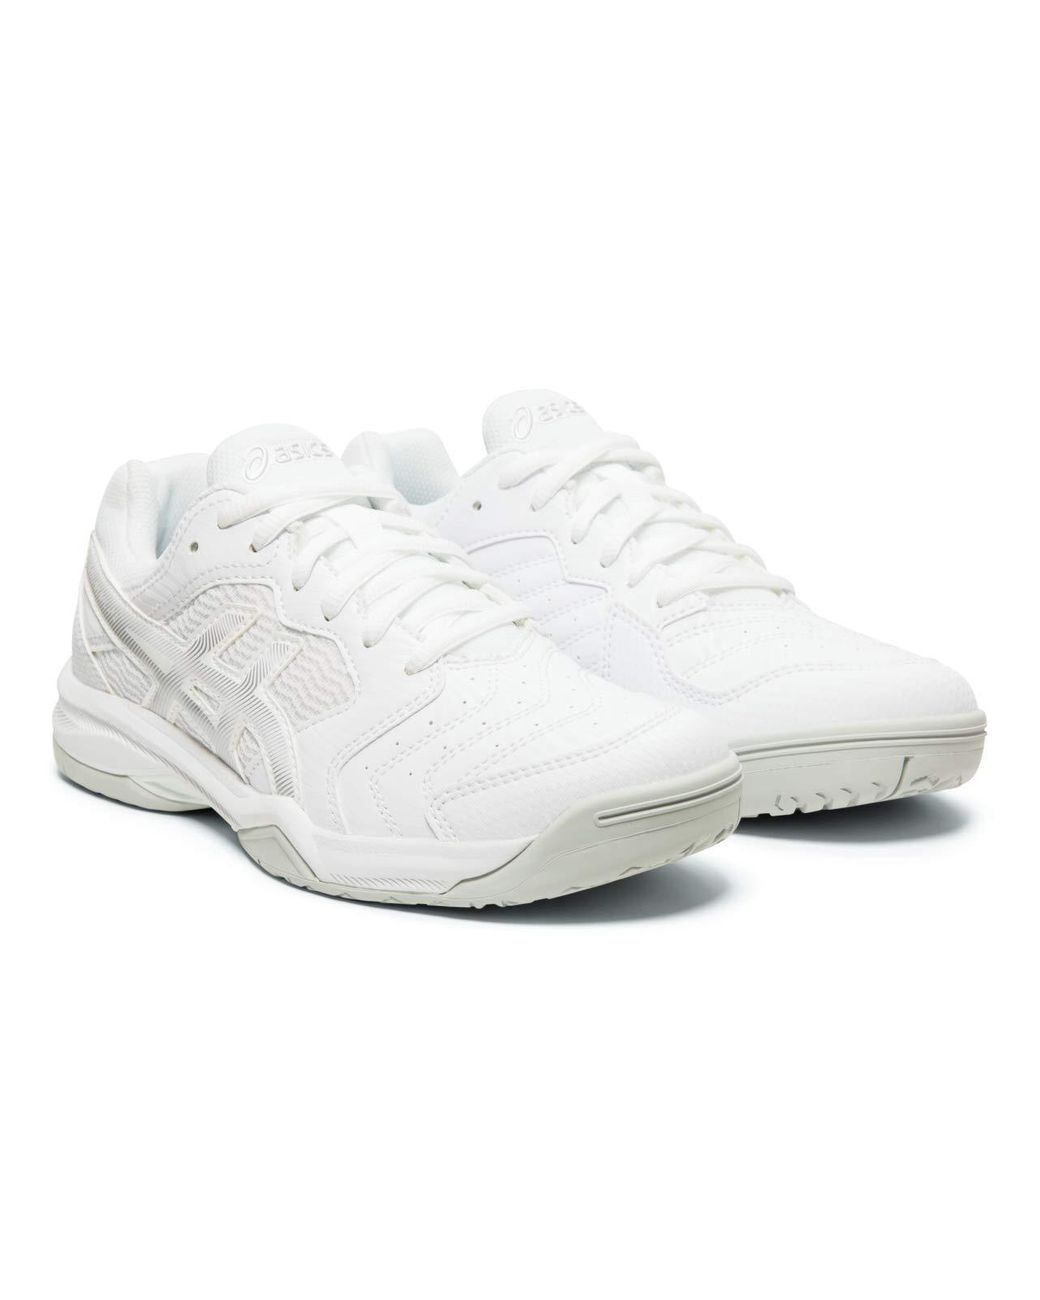 Asics Mens Gel-Dedicate 5 Tennis Shoes Yellow Sports Breathable Trainers